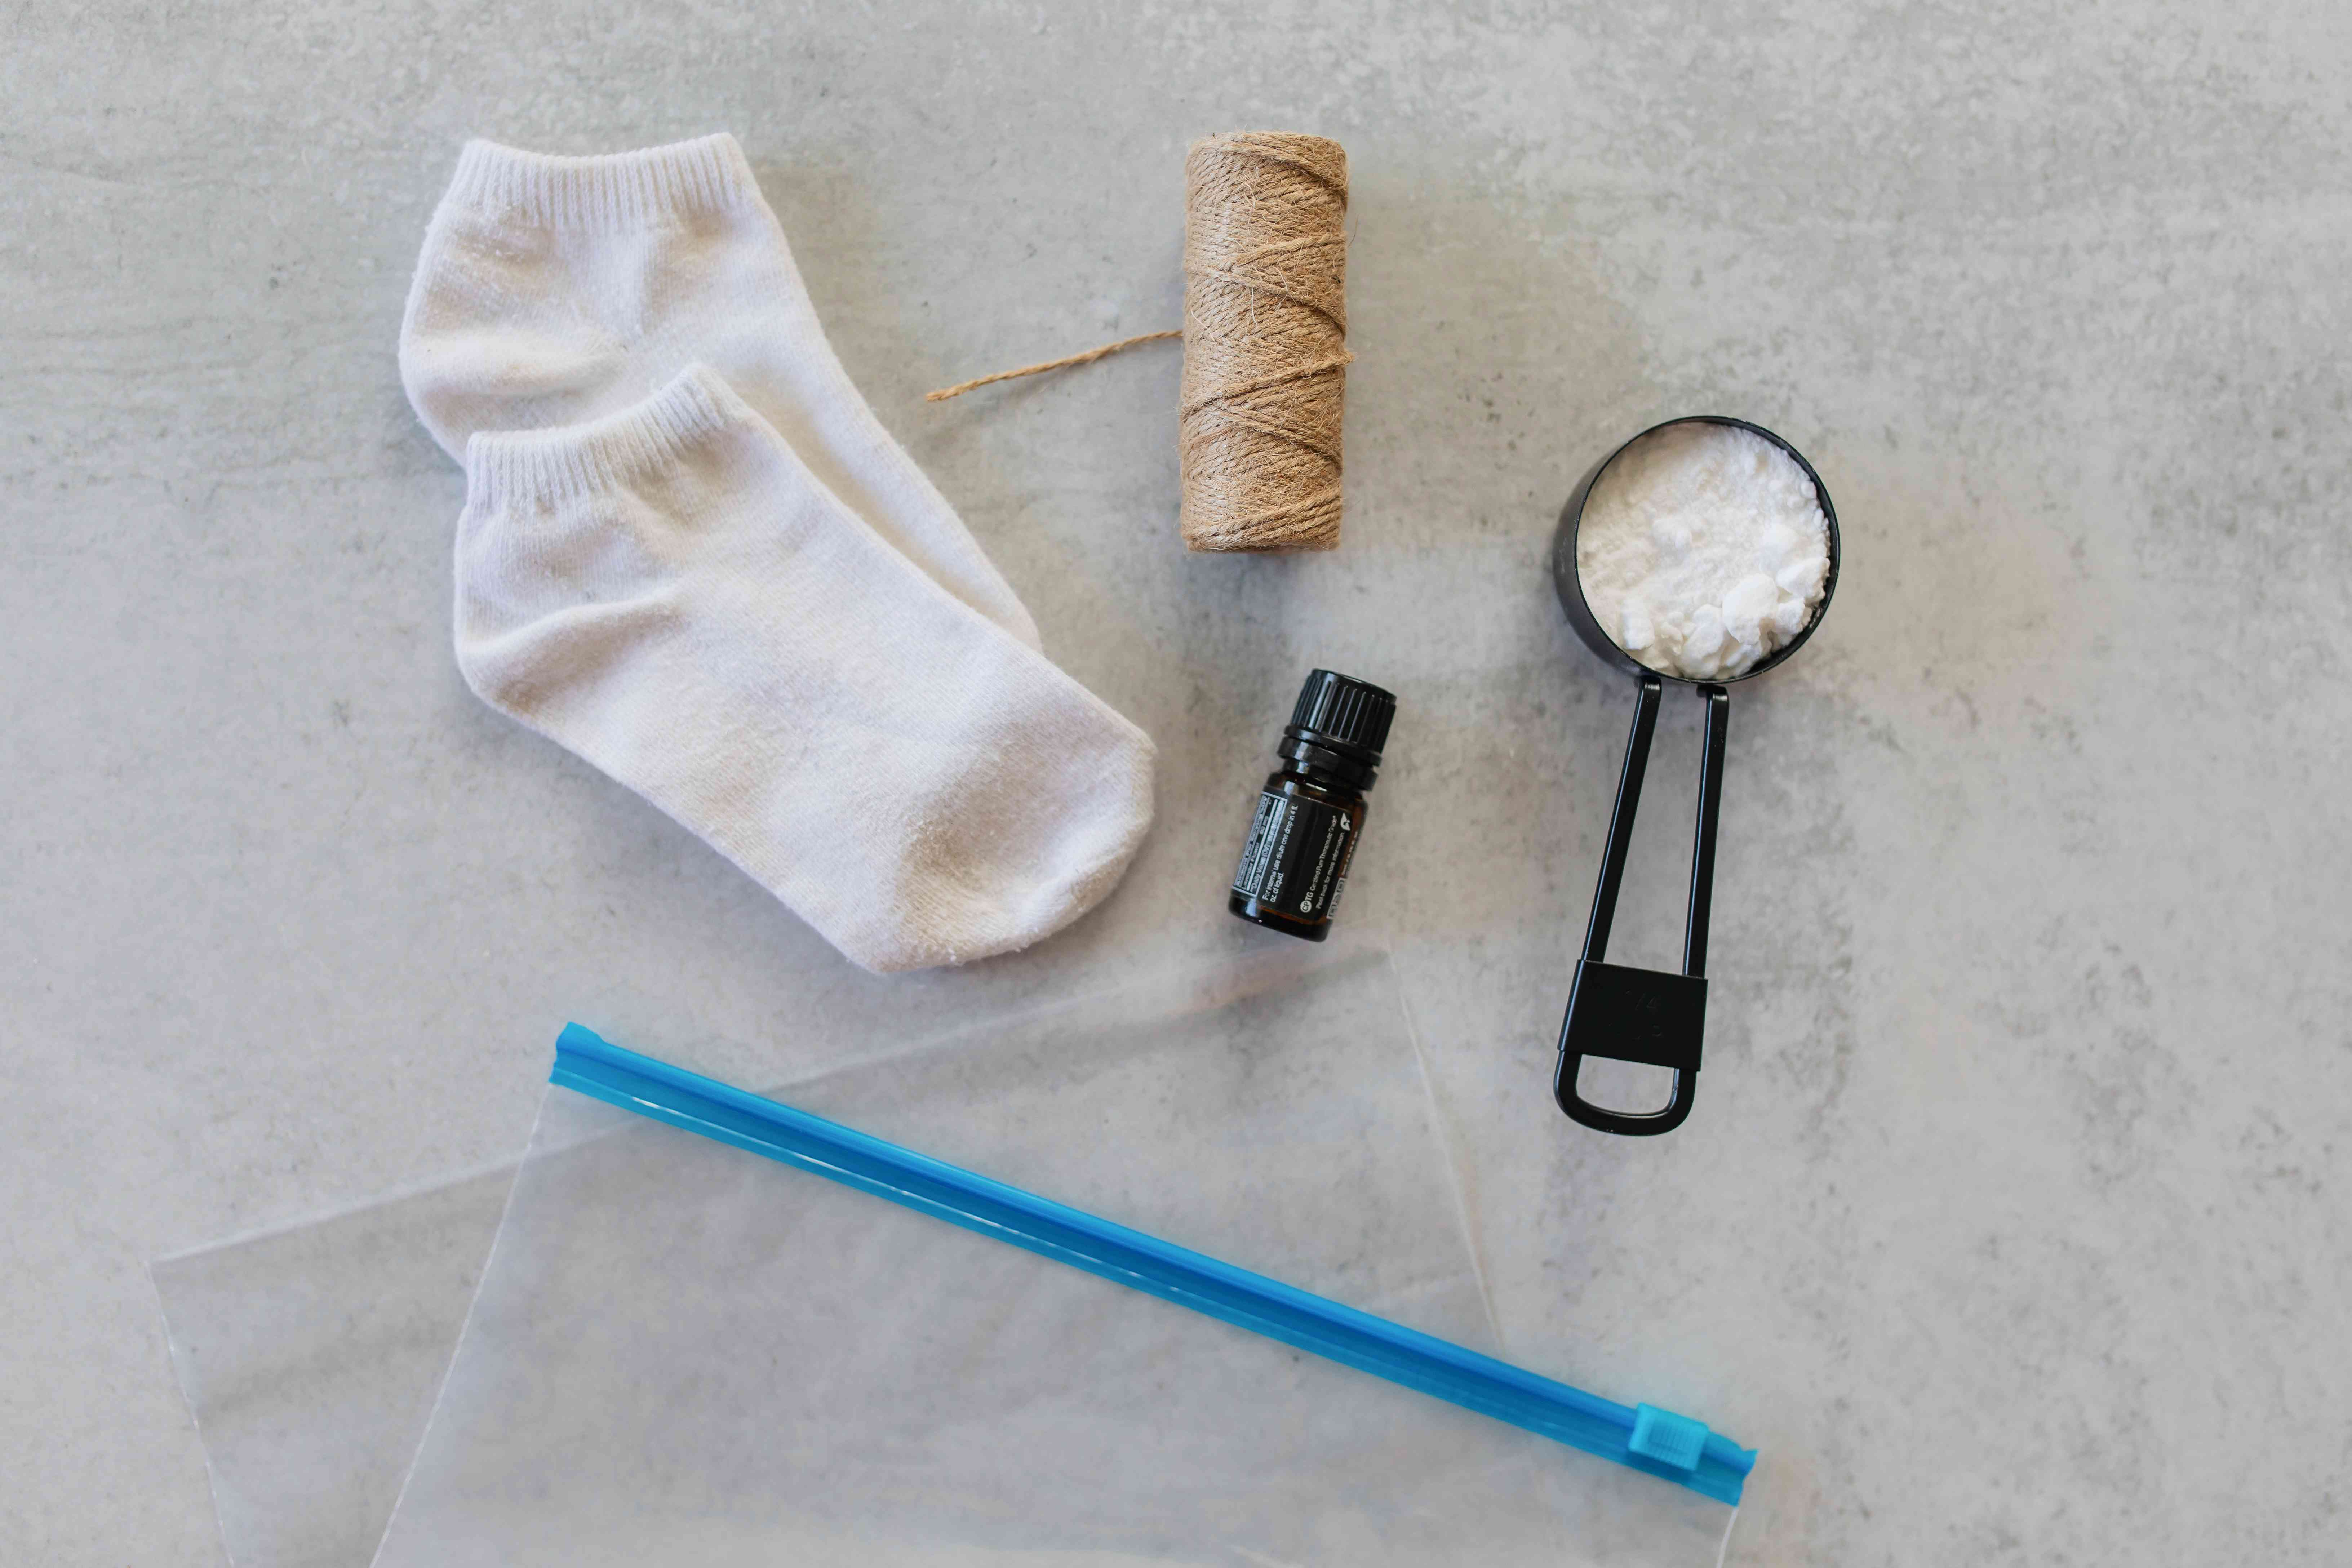 materials for removing shoe odors